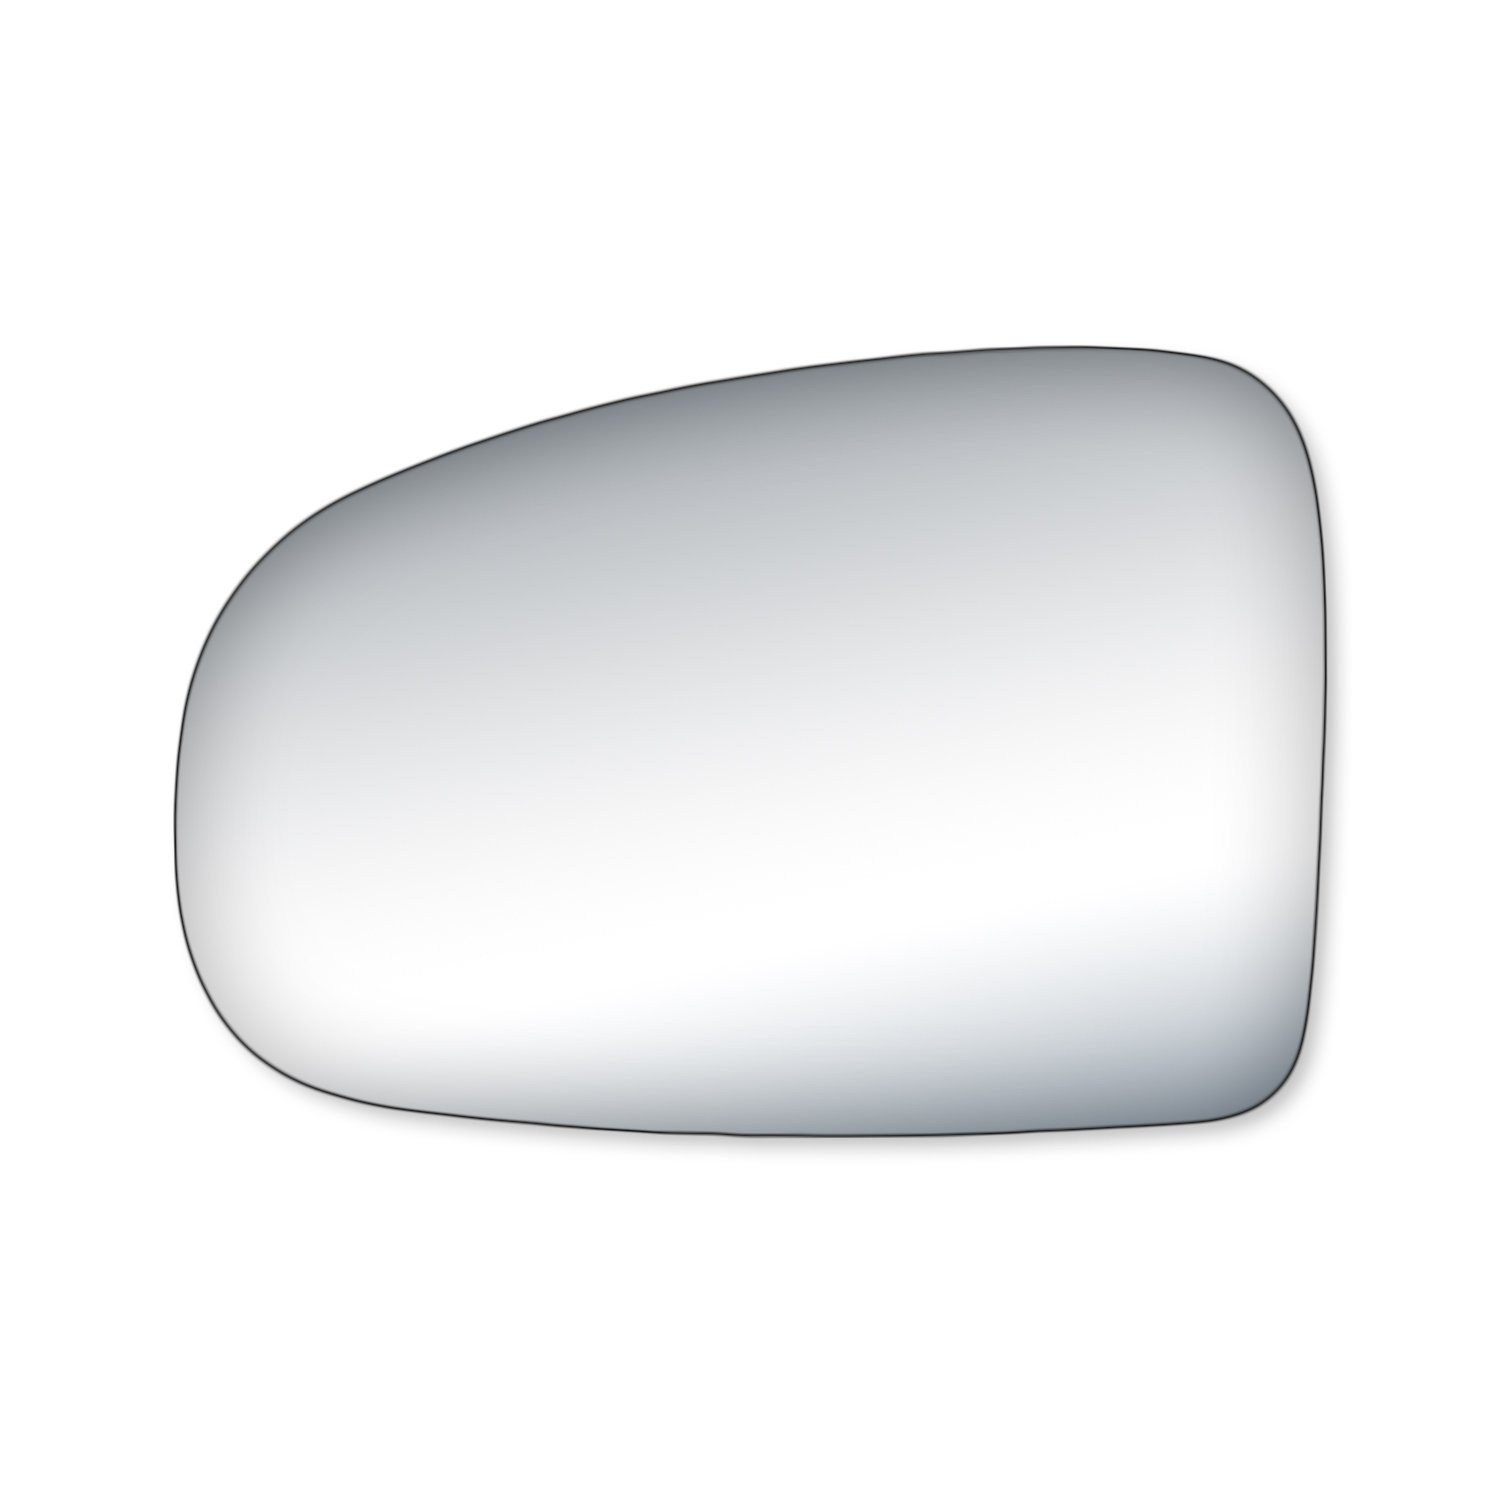 Fit System 99227 Driver/Passenger Side Replacement Glass K Source